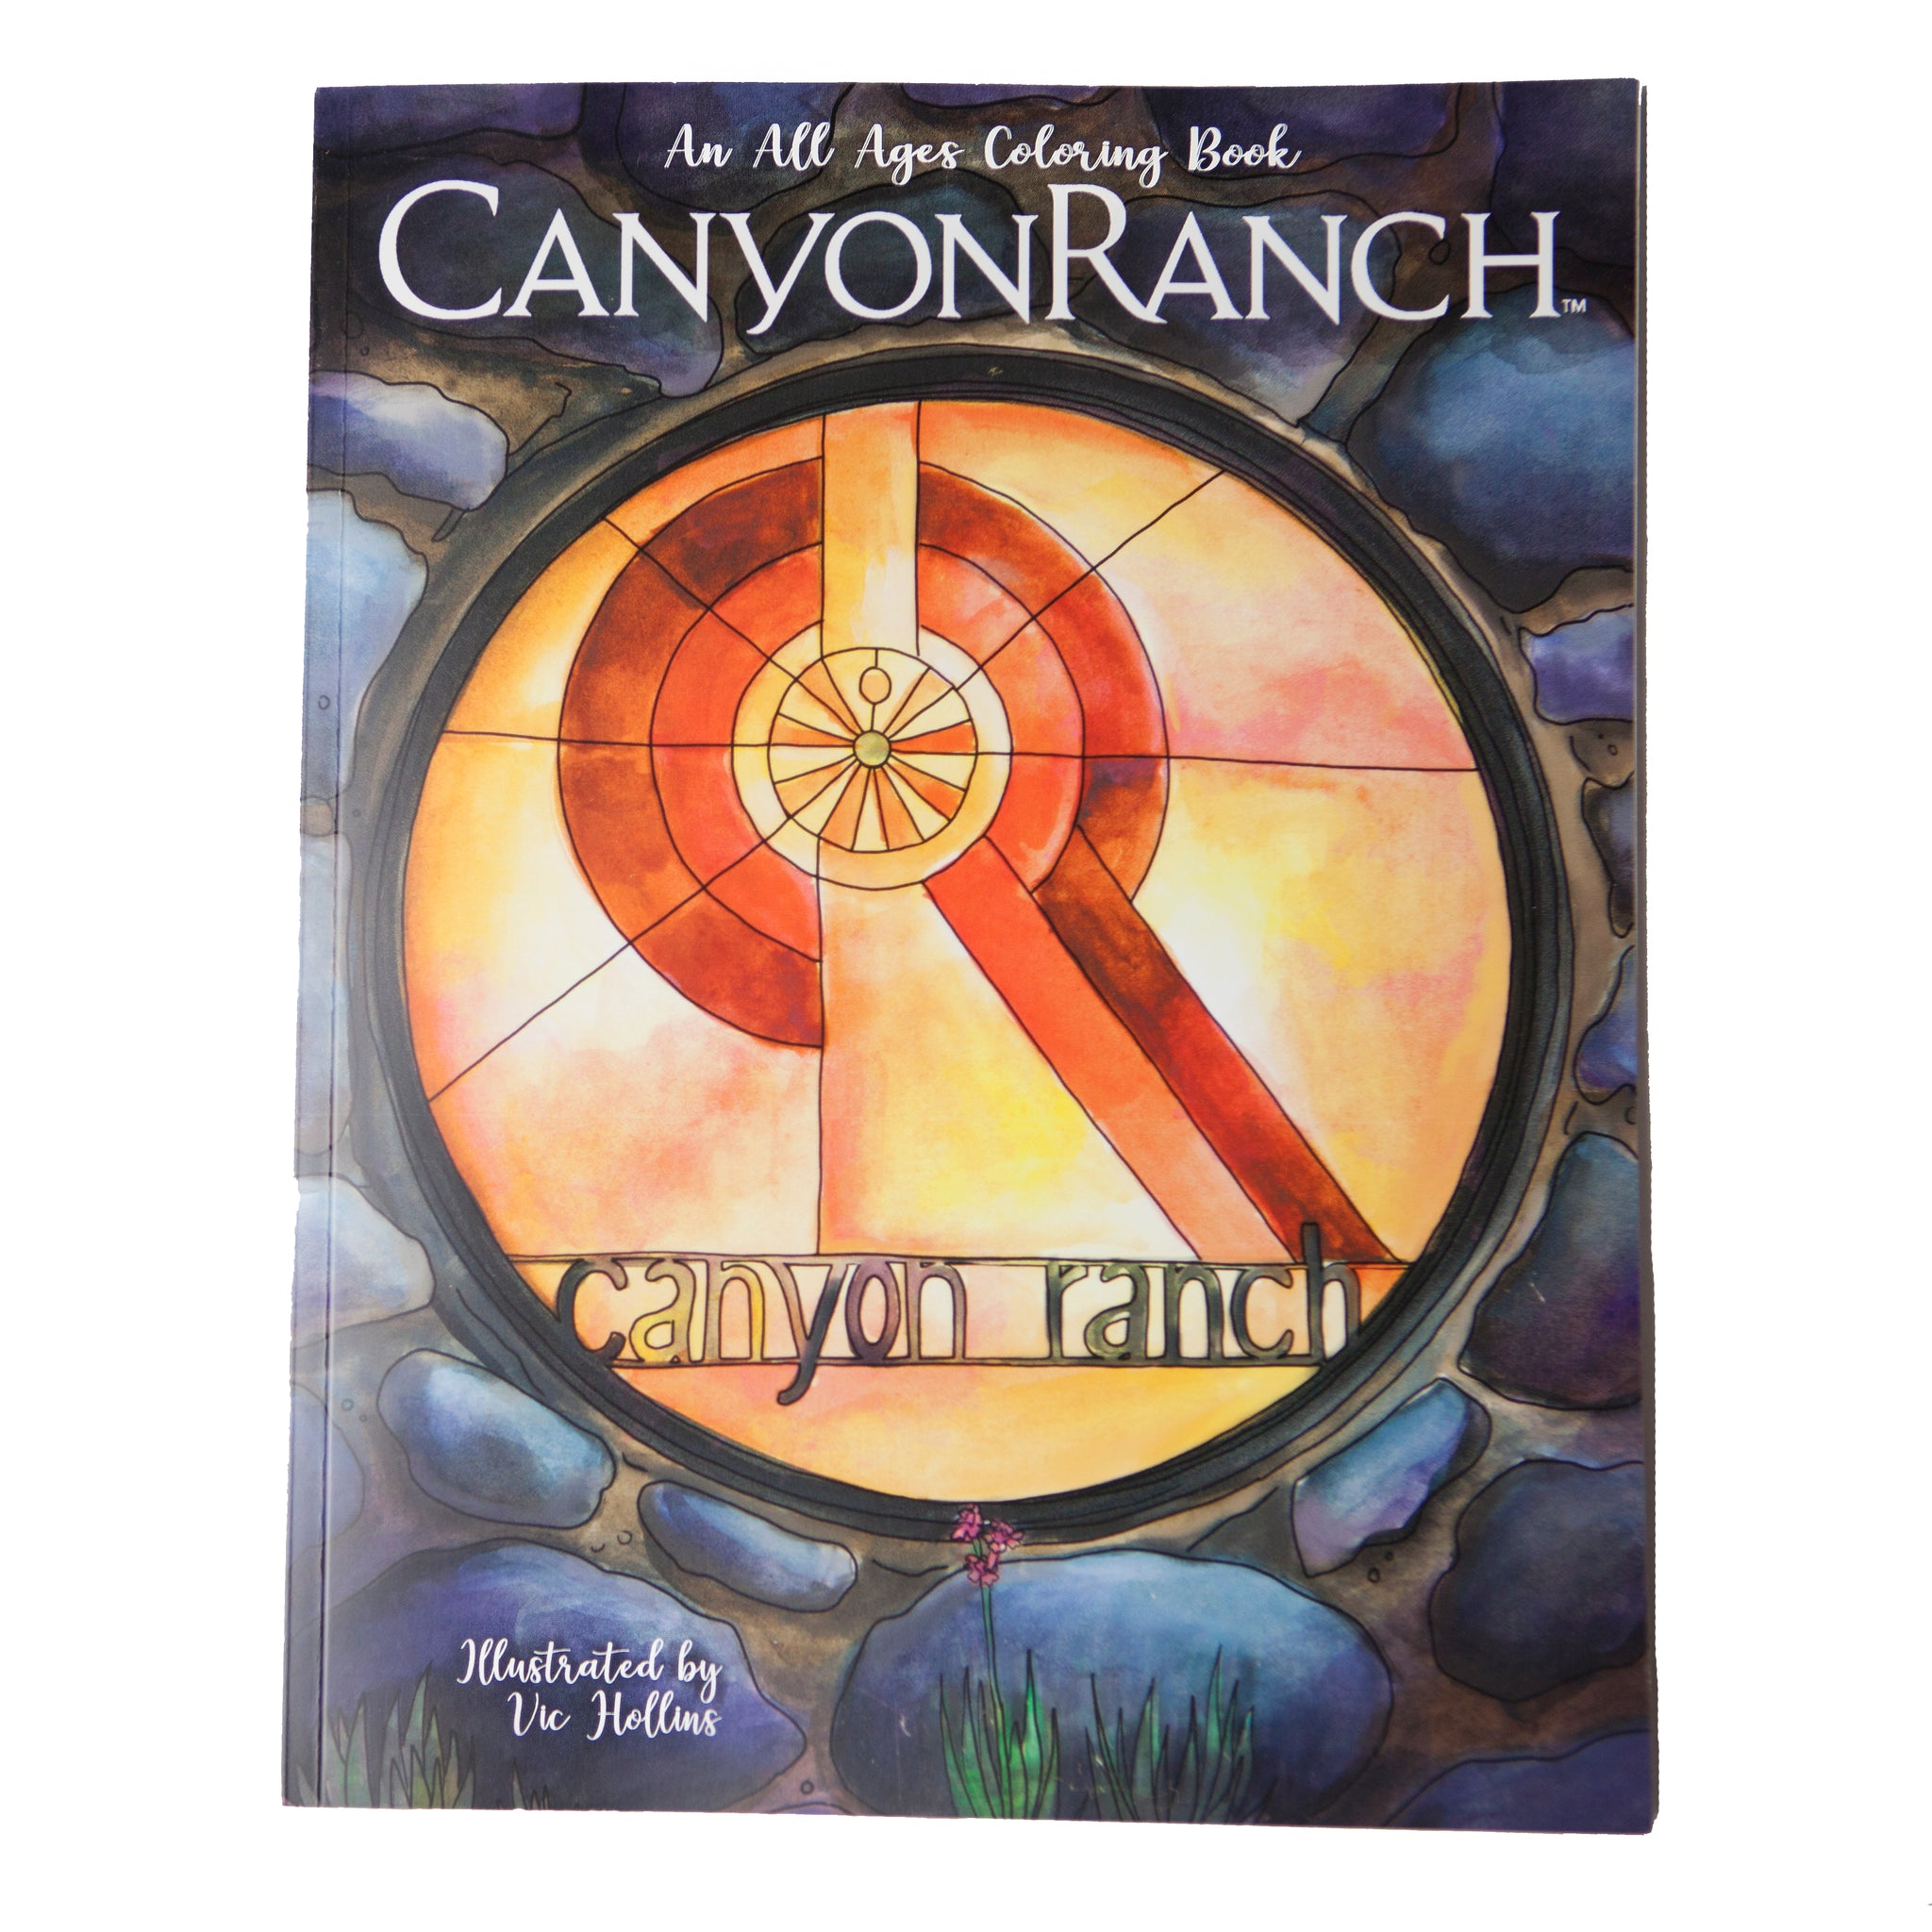 Canyon Ranch All Ages Coloring Book